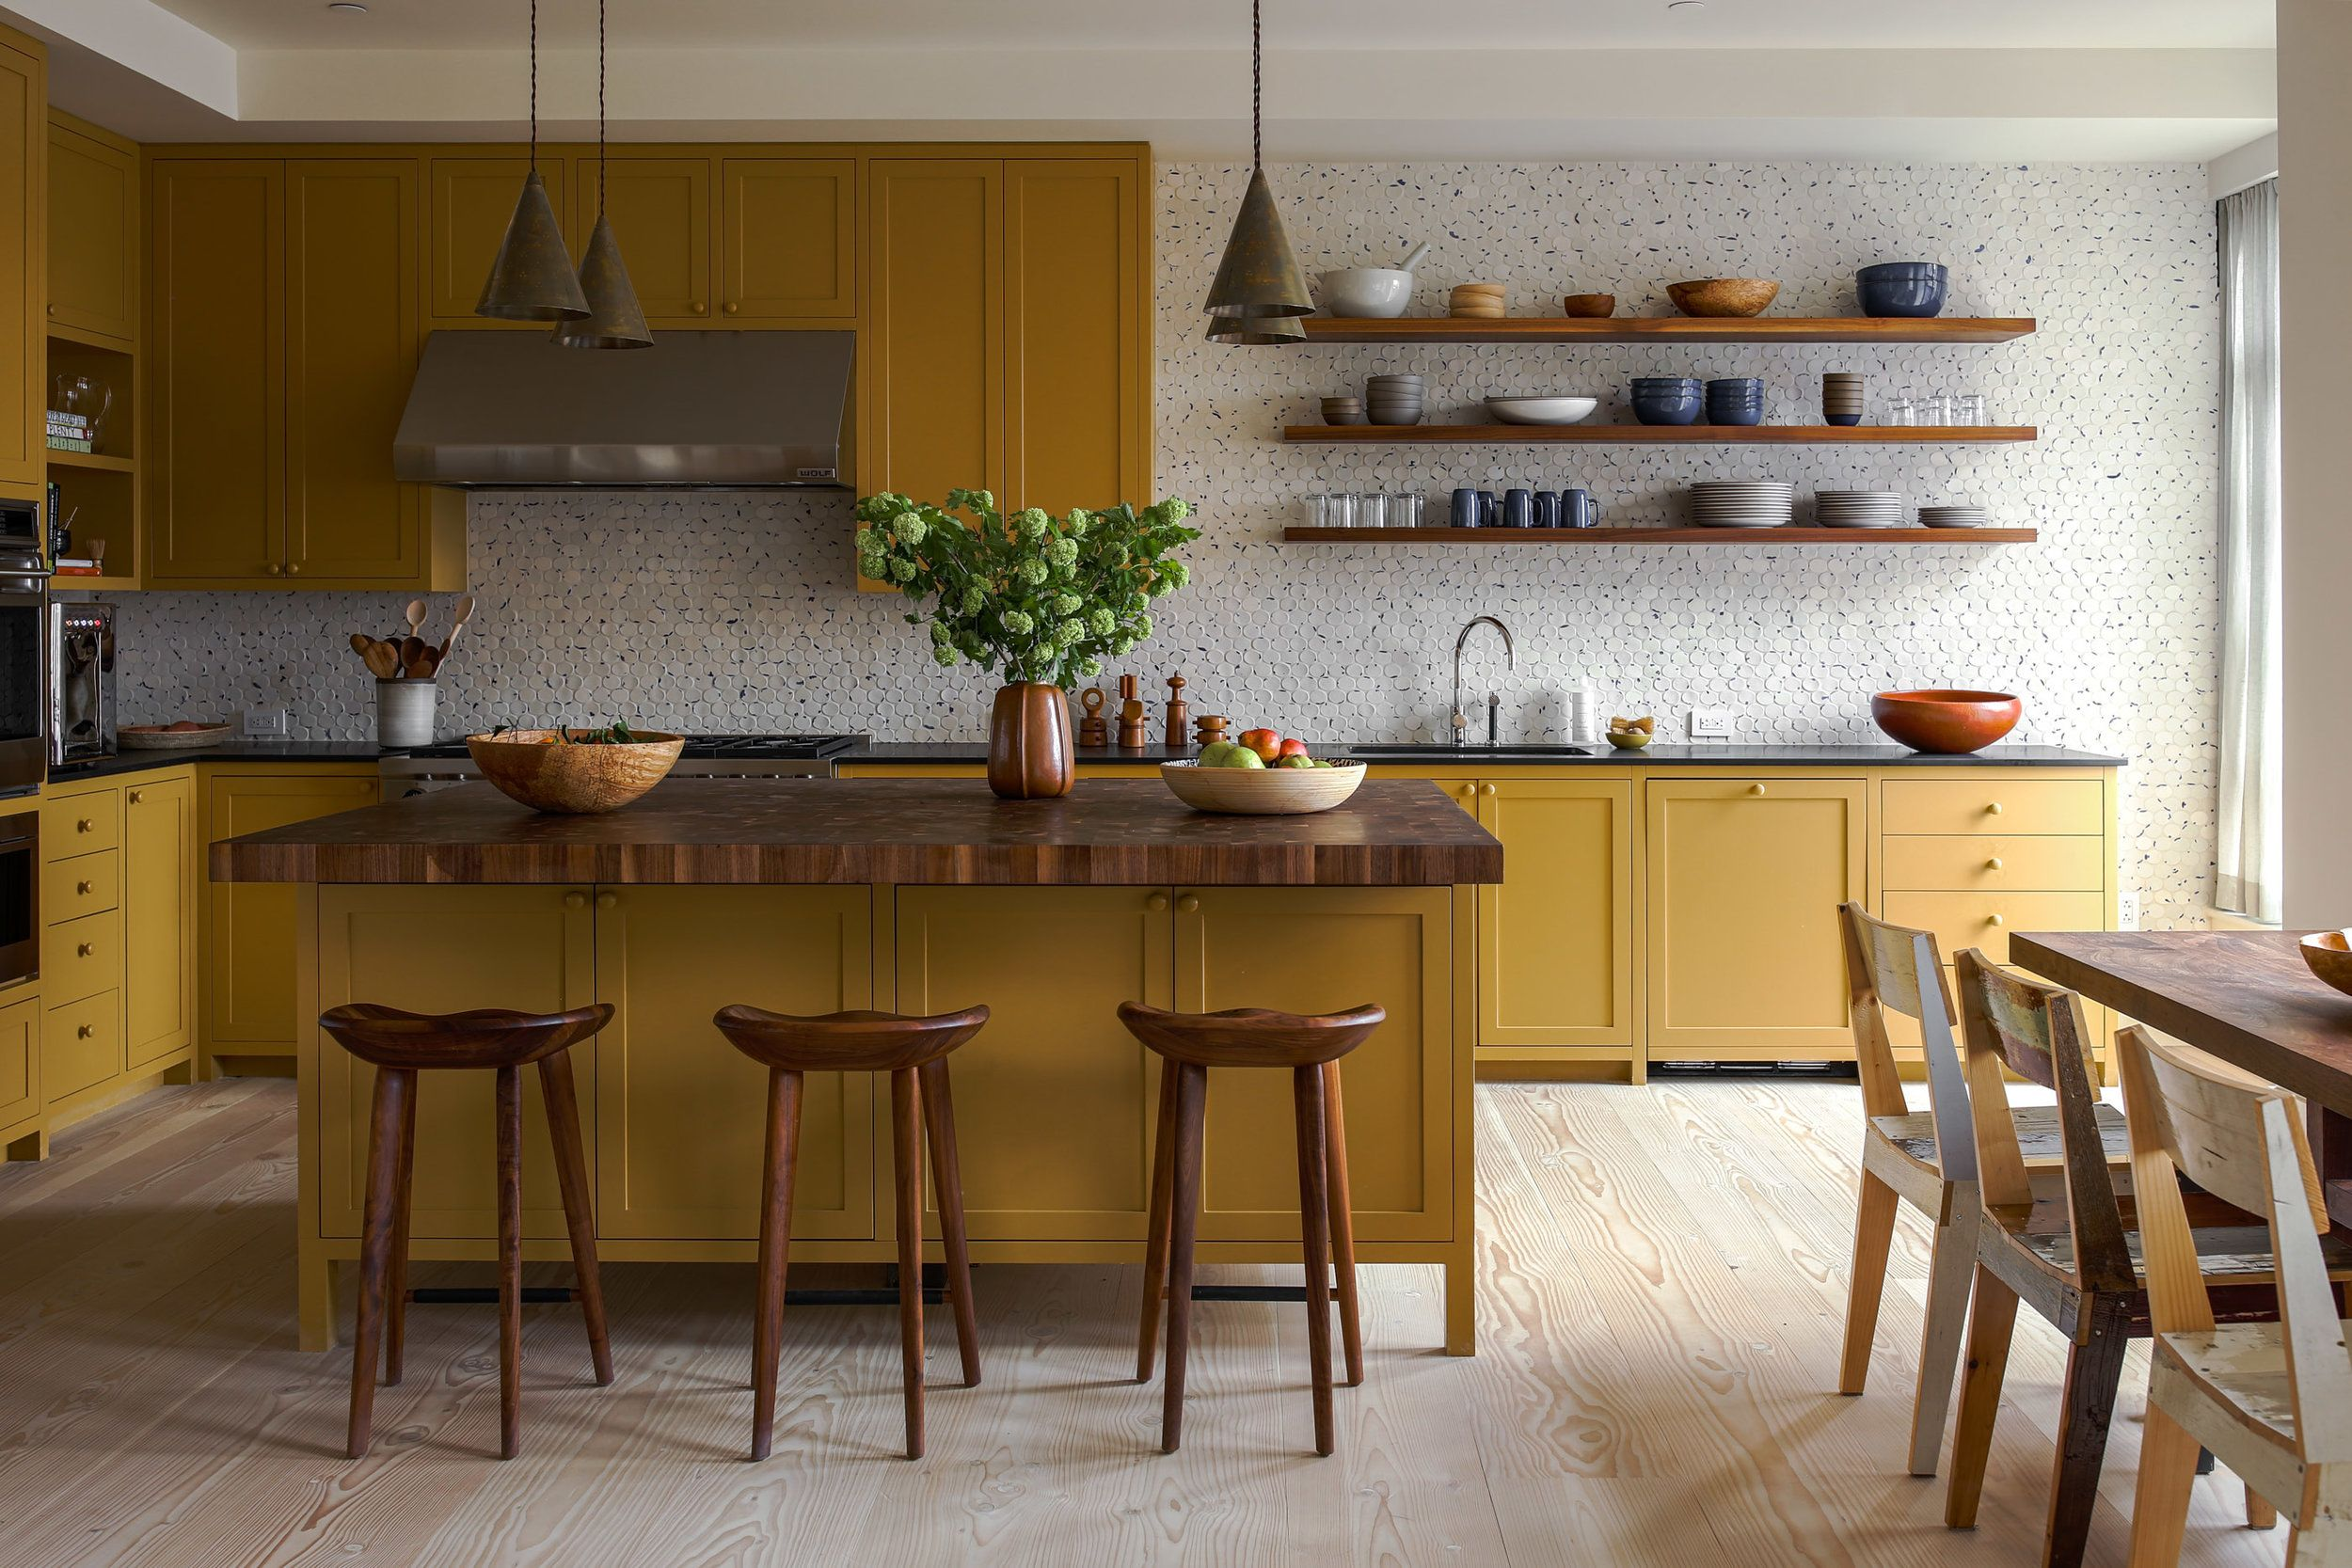 1v2a0517 Edit Jpg With Images Home Decor Kitchen Kitchen Design Yellow Kitchen Cabinets